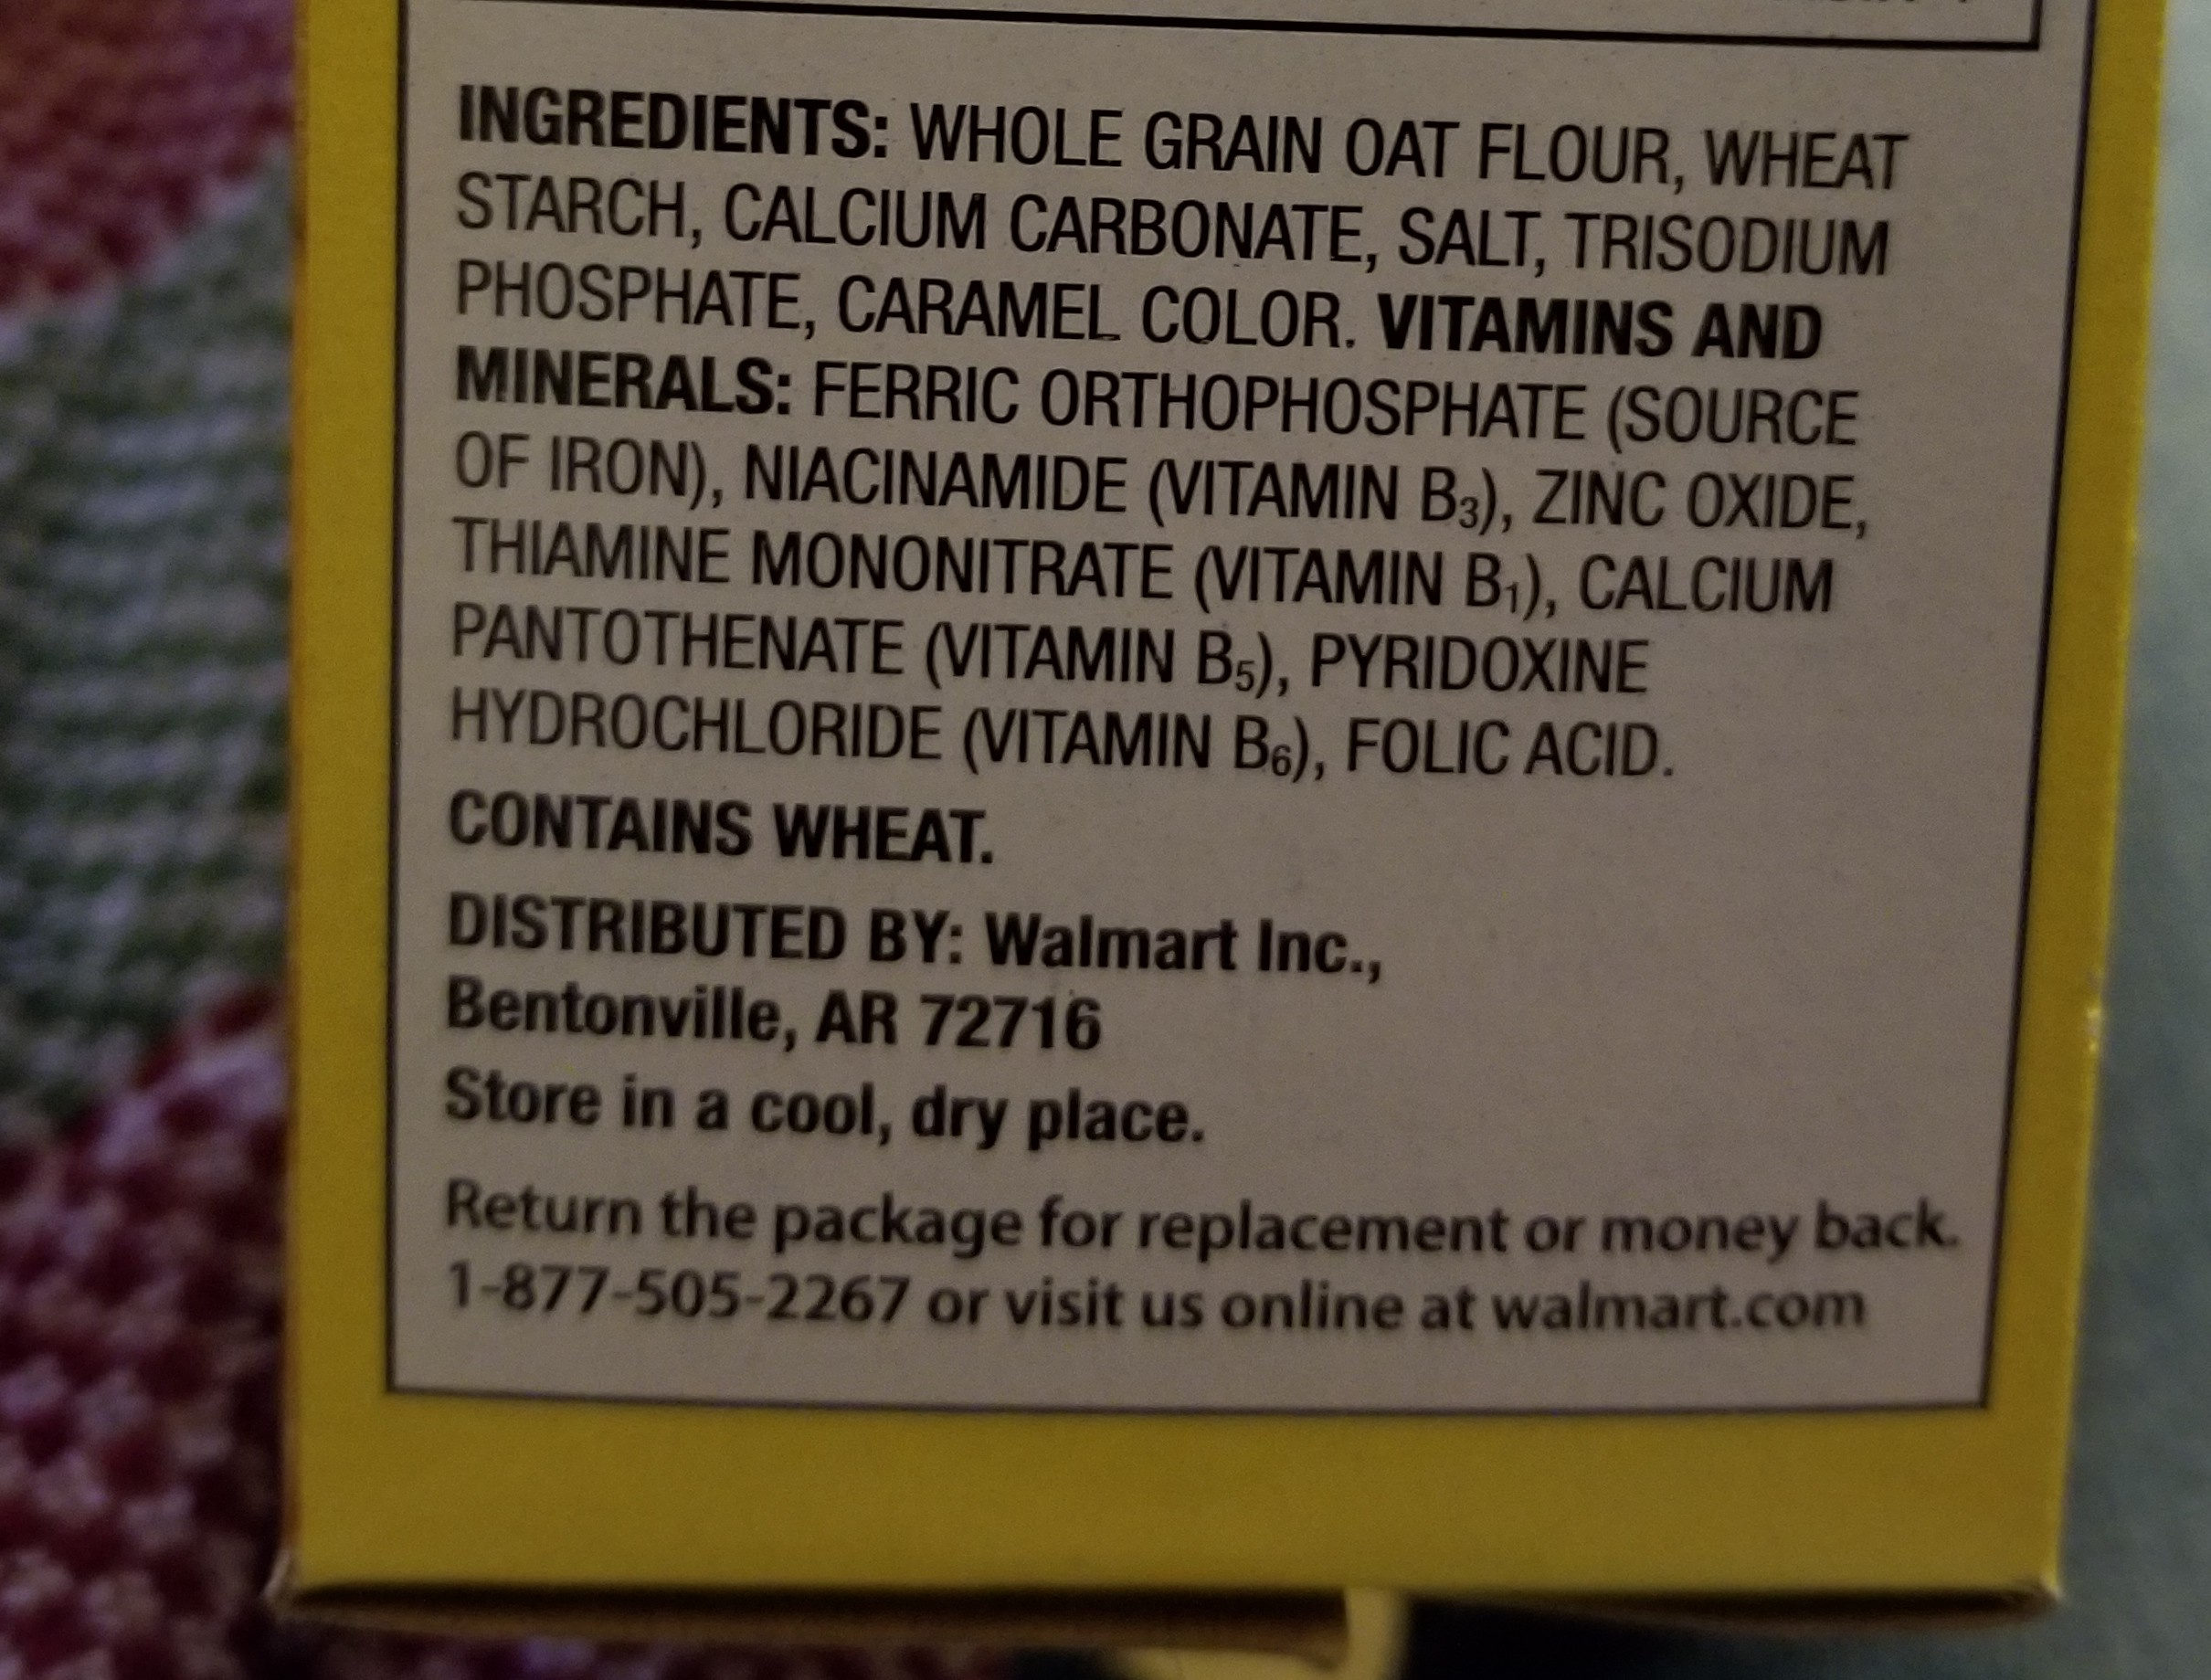 toasted o's - Ingredients